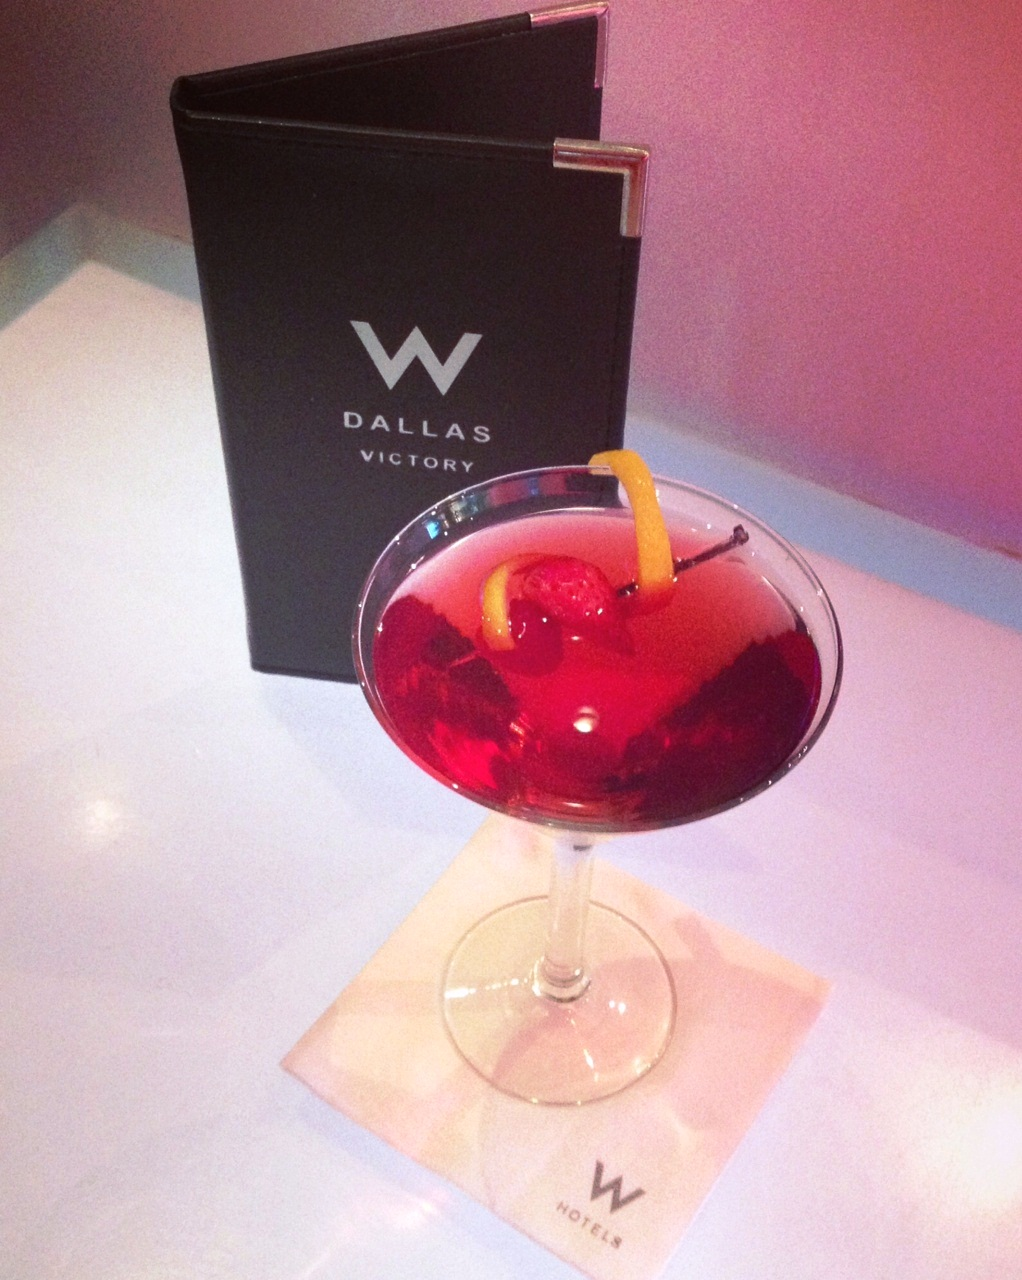 The W Dallas – Victory Hotel Goes Red For Women With Two Exclusive Cocktails This February